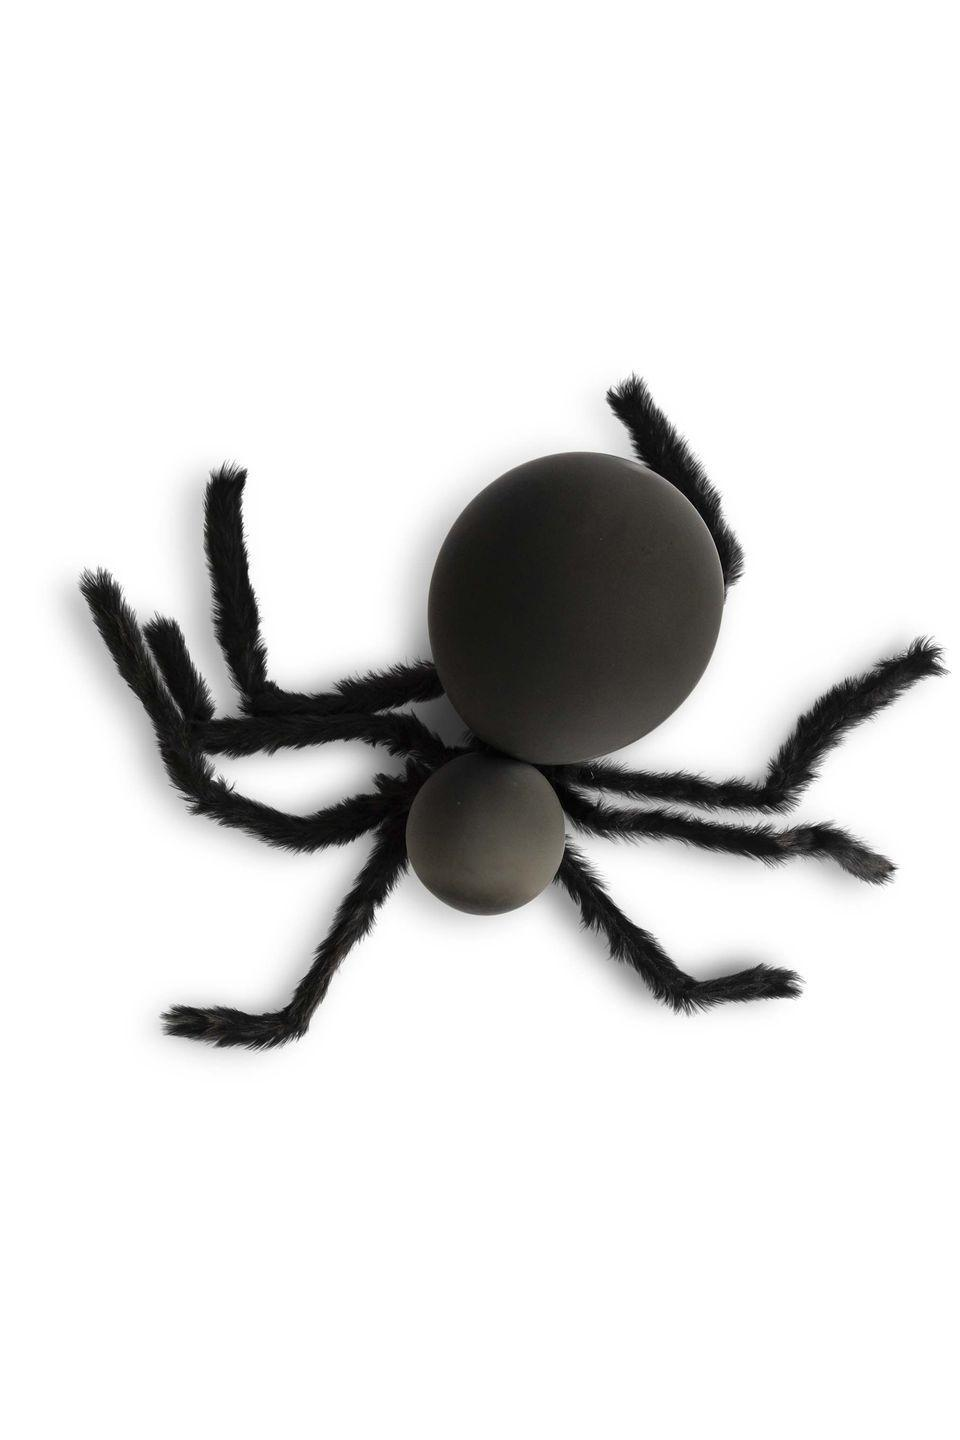 """<p>Make a cluster of these creepy-crawlies in different sizes to hang outside. </p><p><strong>Make the body:</strong> Blow up one large black balloon for the body and one smaller black balloon for the head. Tie the two balloon knots together to form the spider.</p><p><strong>Make the legs: </strong>Wrap eight lengths of unfurled wire hanger or 12-gauge craft wire with black faux fur, holding in place with hot-glue. Twist ends of four lengths together, creating bundles of legs. Repeat with remaining four lengths.</p><p><strong>Assemble the spider: </strong>Wrap a black pipe cleaner around twisted ends of leg bundles. Wrap pipe cleaner around """"neck"""" of spider where balloons are tied together. Wrap fishing wire around leg to hang. </p>"""